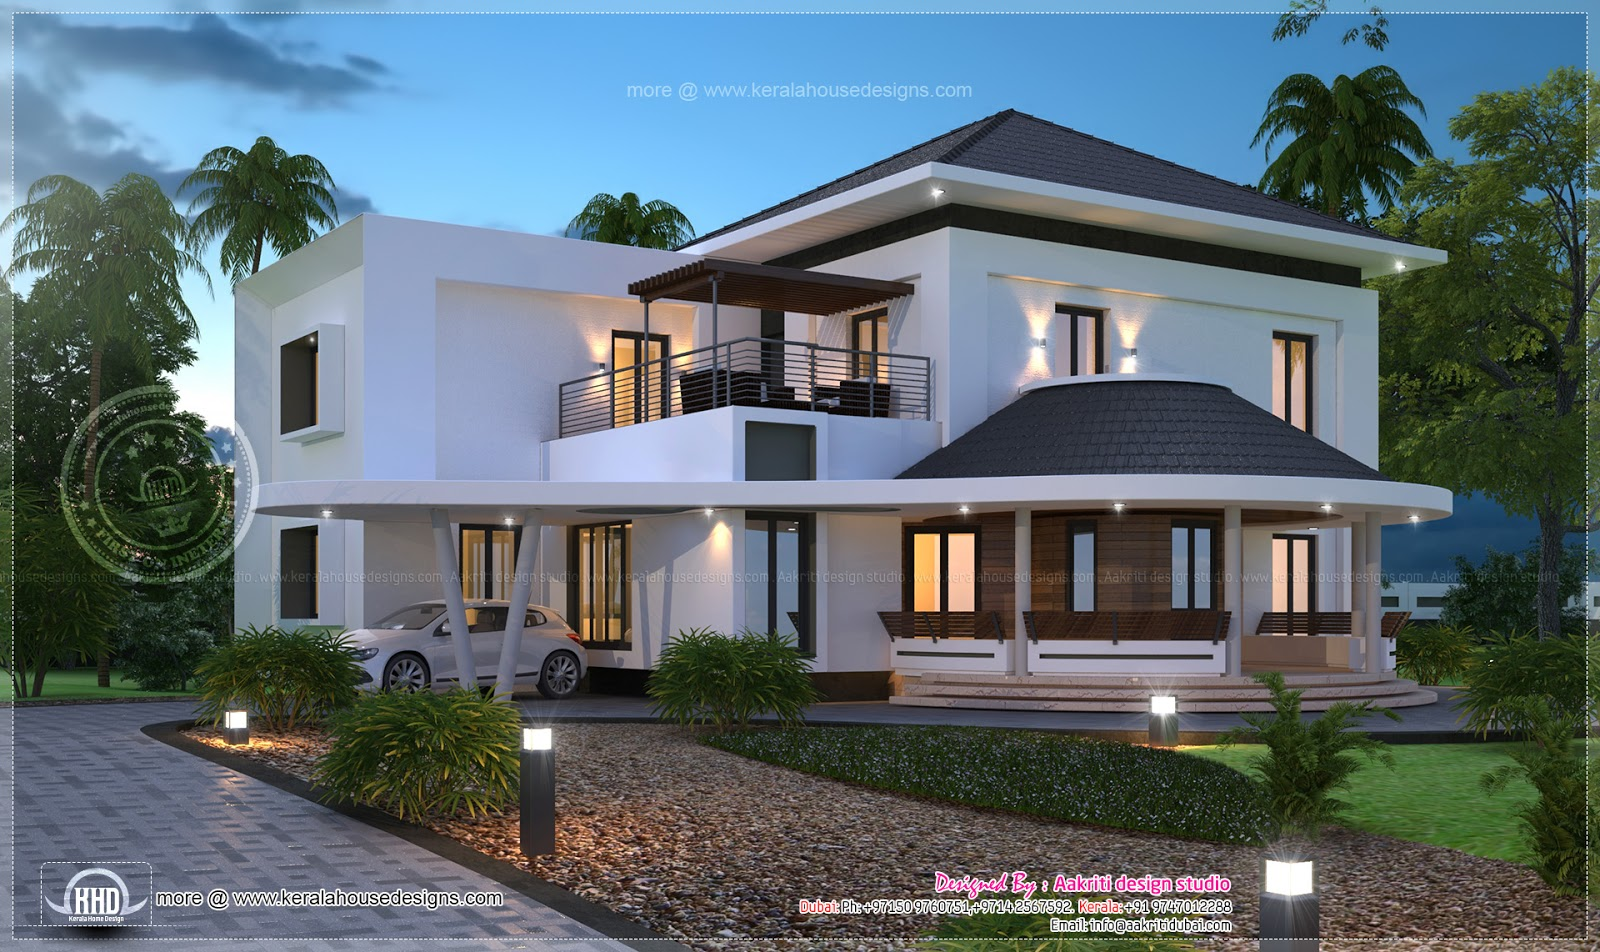 beautiful 3200 sq ft modern villa exterior kerala home design and floor plans. Black Bedroom Furniture Sets. Home Design Ideas